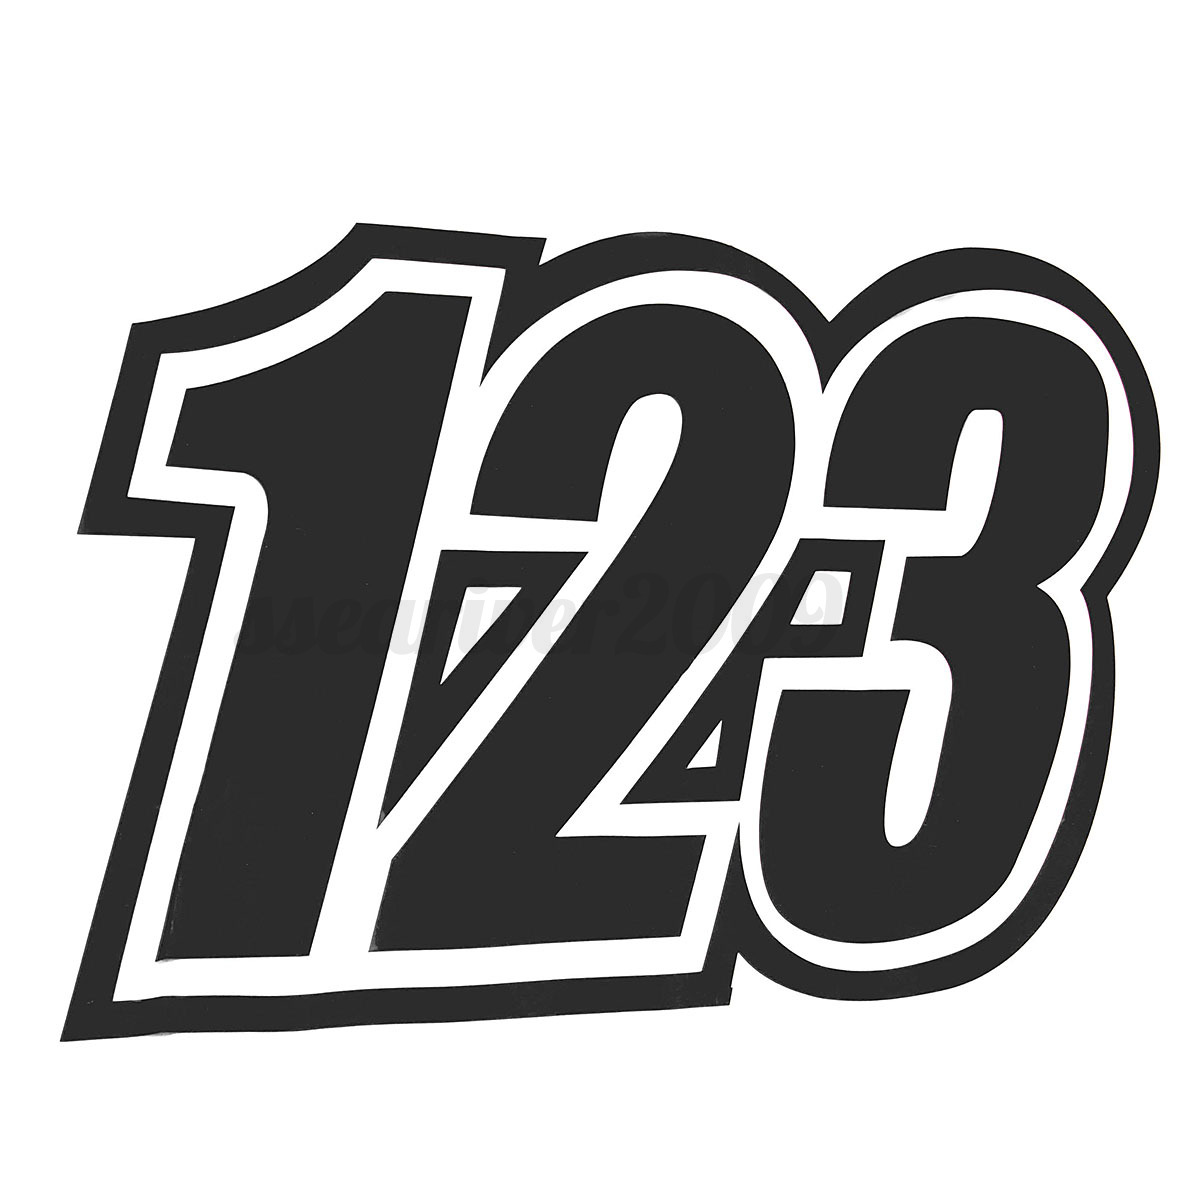 1 2 3 Vinyl Race Number Stickers Dirt Bike Motocross. License Test Signs Of Stroke. Lighthouse Painting Murals. Atrophic Signs. Seattle Mariners Logo. Kayak Fishing Stickers. Dart Signs. Pisces Horoscope Signs. Ps4 Banners